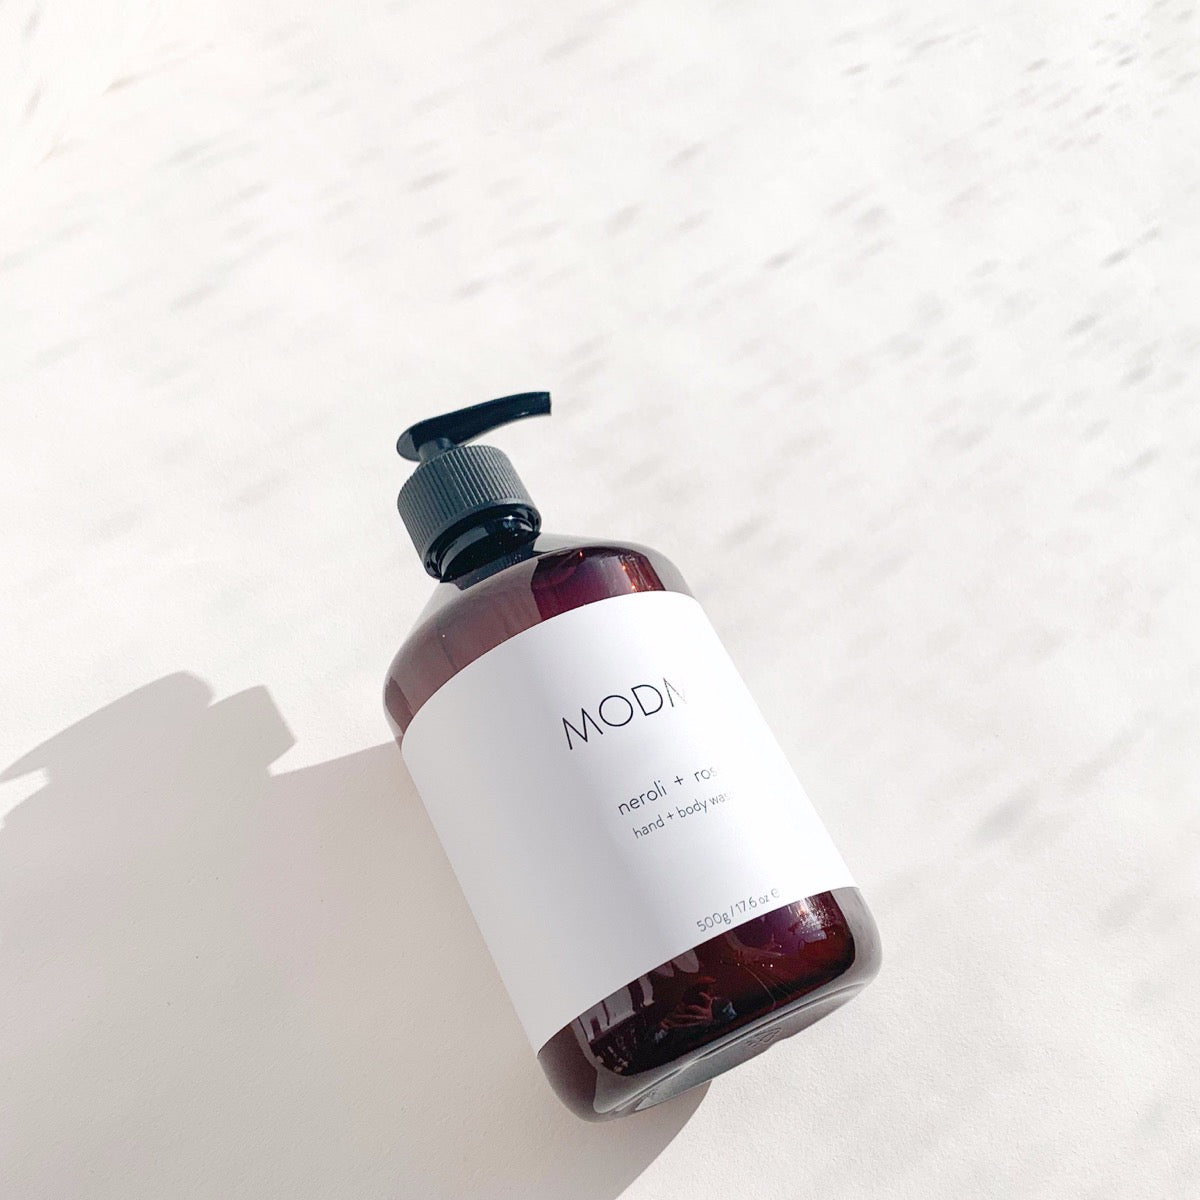 HAND/BODY WASH (NEROLI & ROSE) - MODM beauty MODM